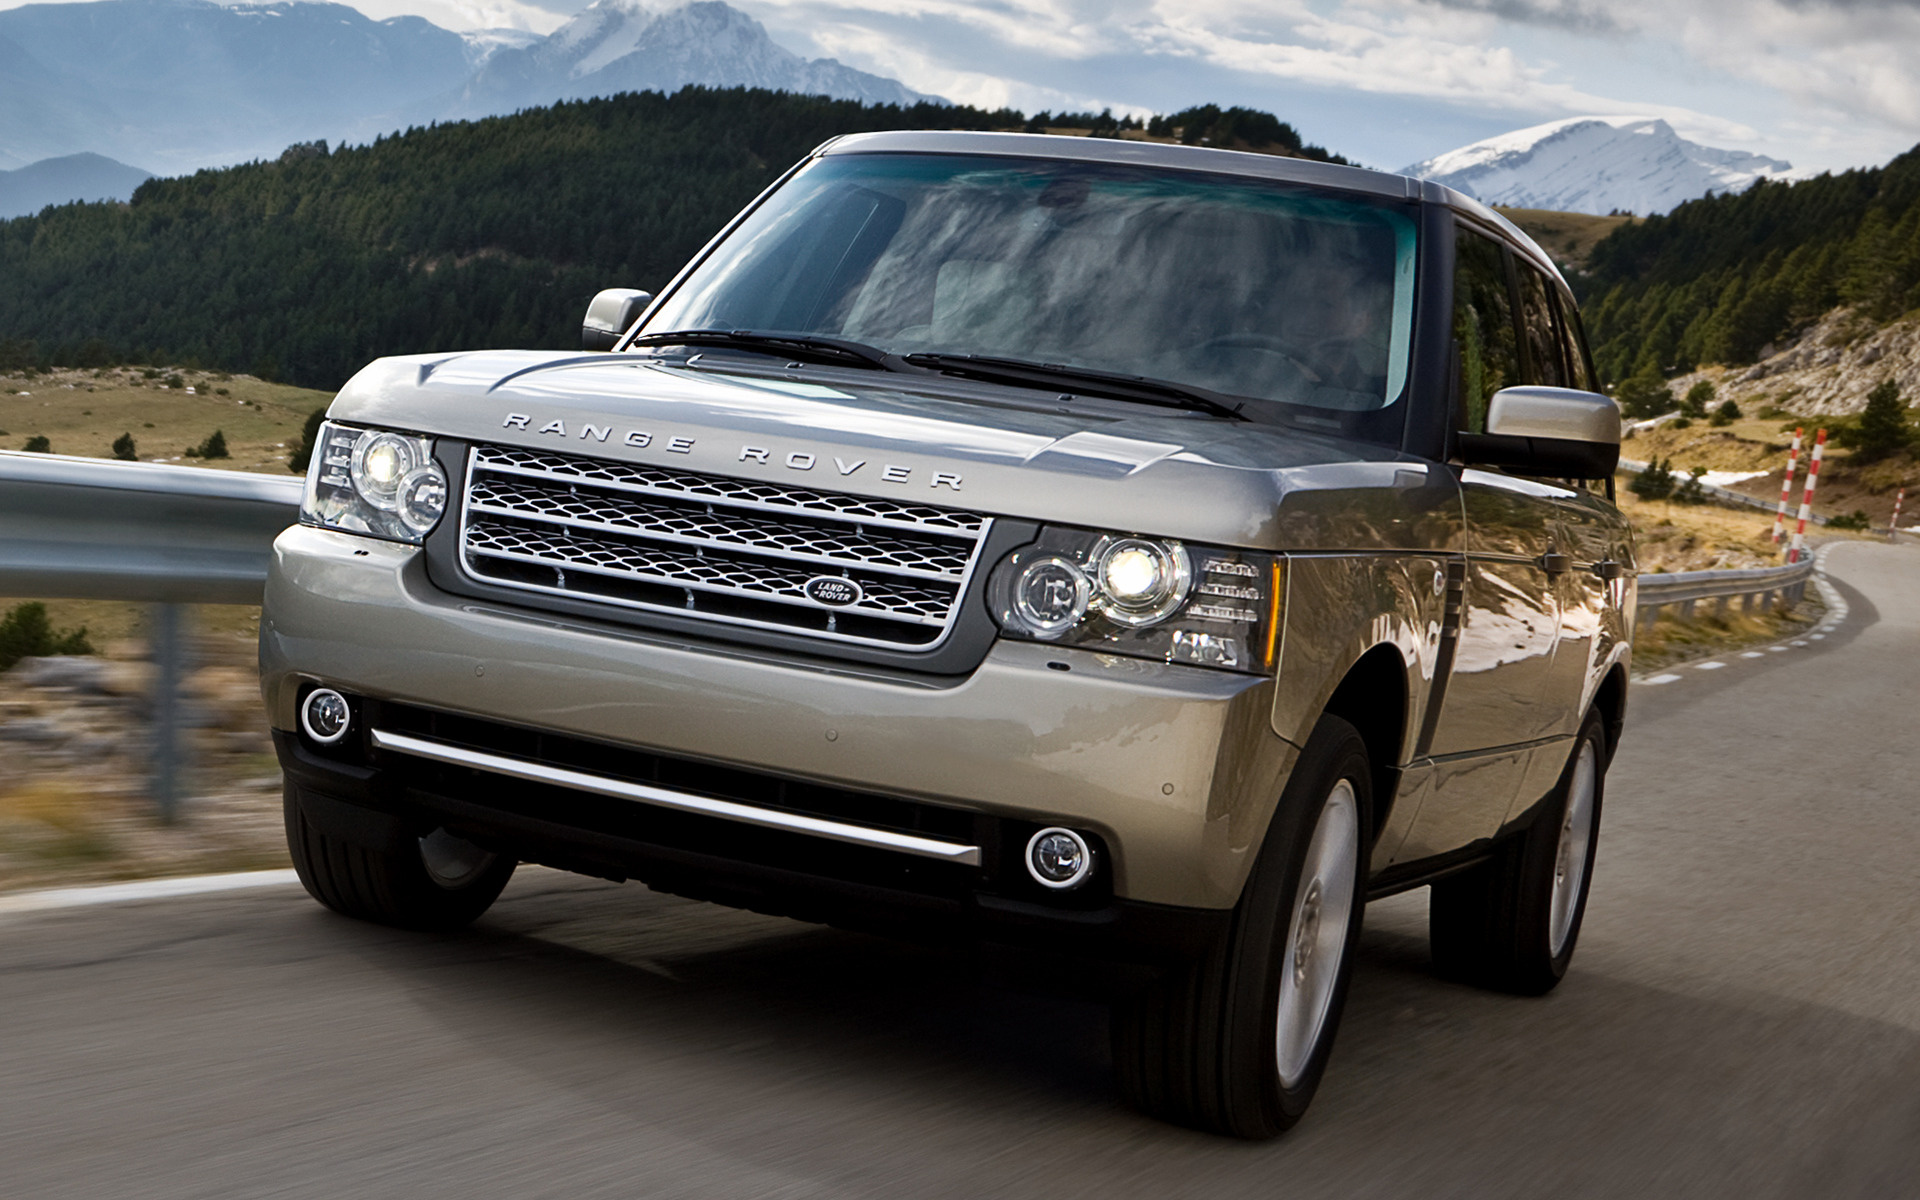 range rover supercharged 2009 wallpapers and hd images. Black Bedroom Furniture Sets. Home Design Ideas